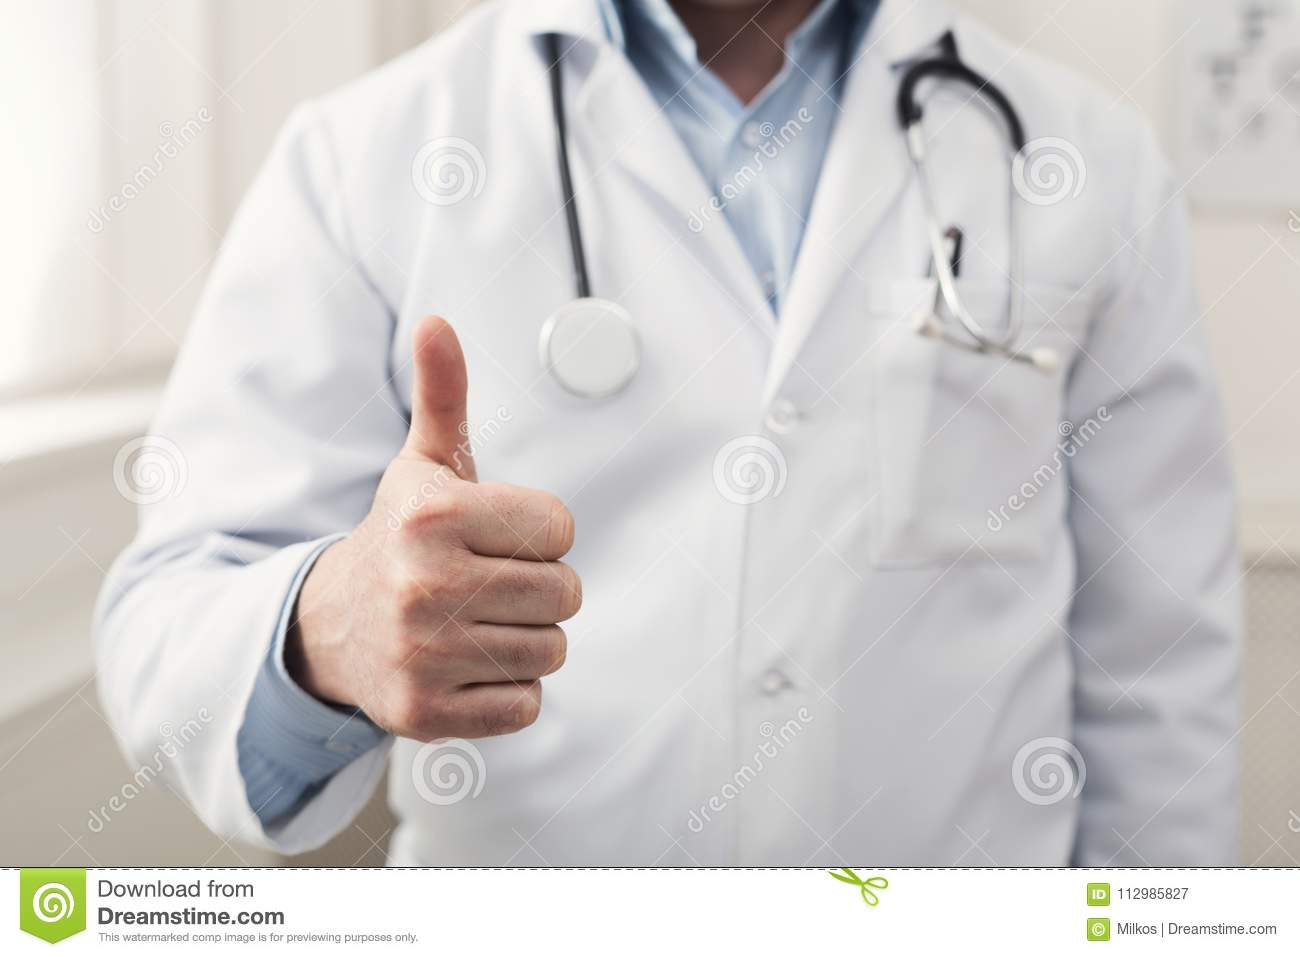 Unrecognizable doctor showing thumb up gesture